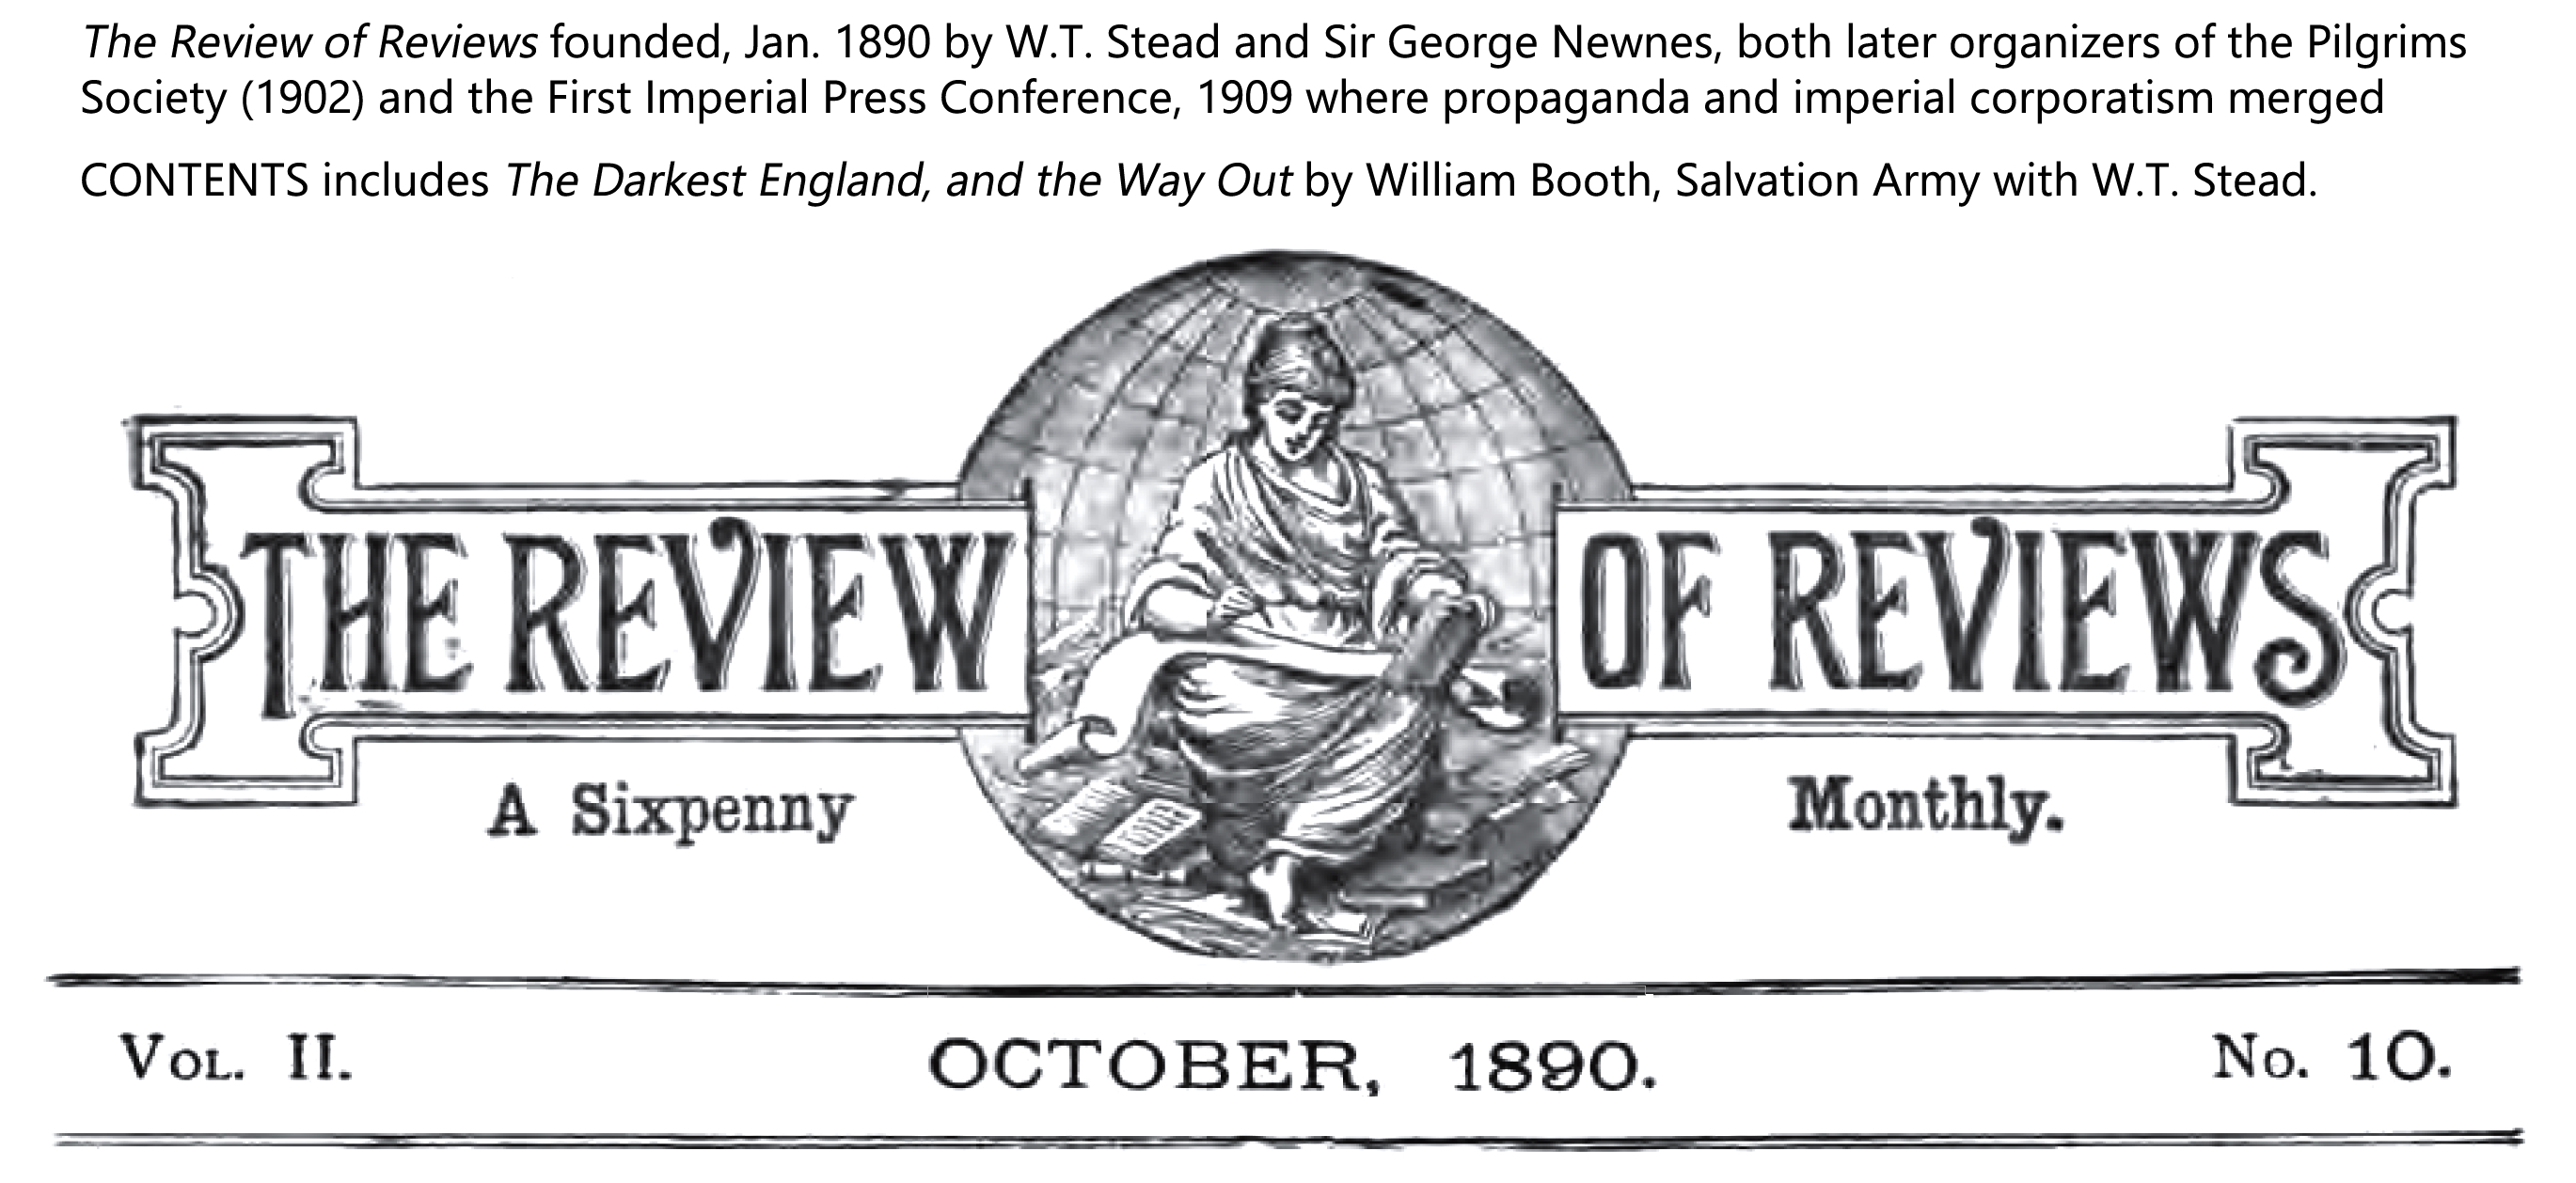 W.T. Stead, ed. (Oct. 01, 1890). In Darkest England and the Way Out by William Booth, Book of the Month, Vol. II, No. 10, Sec. IX (09), pp. 382-397, 492-507. The Review of Reviews.